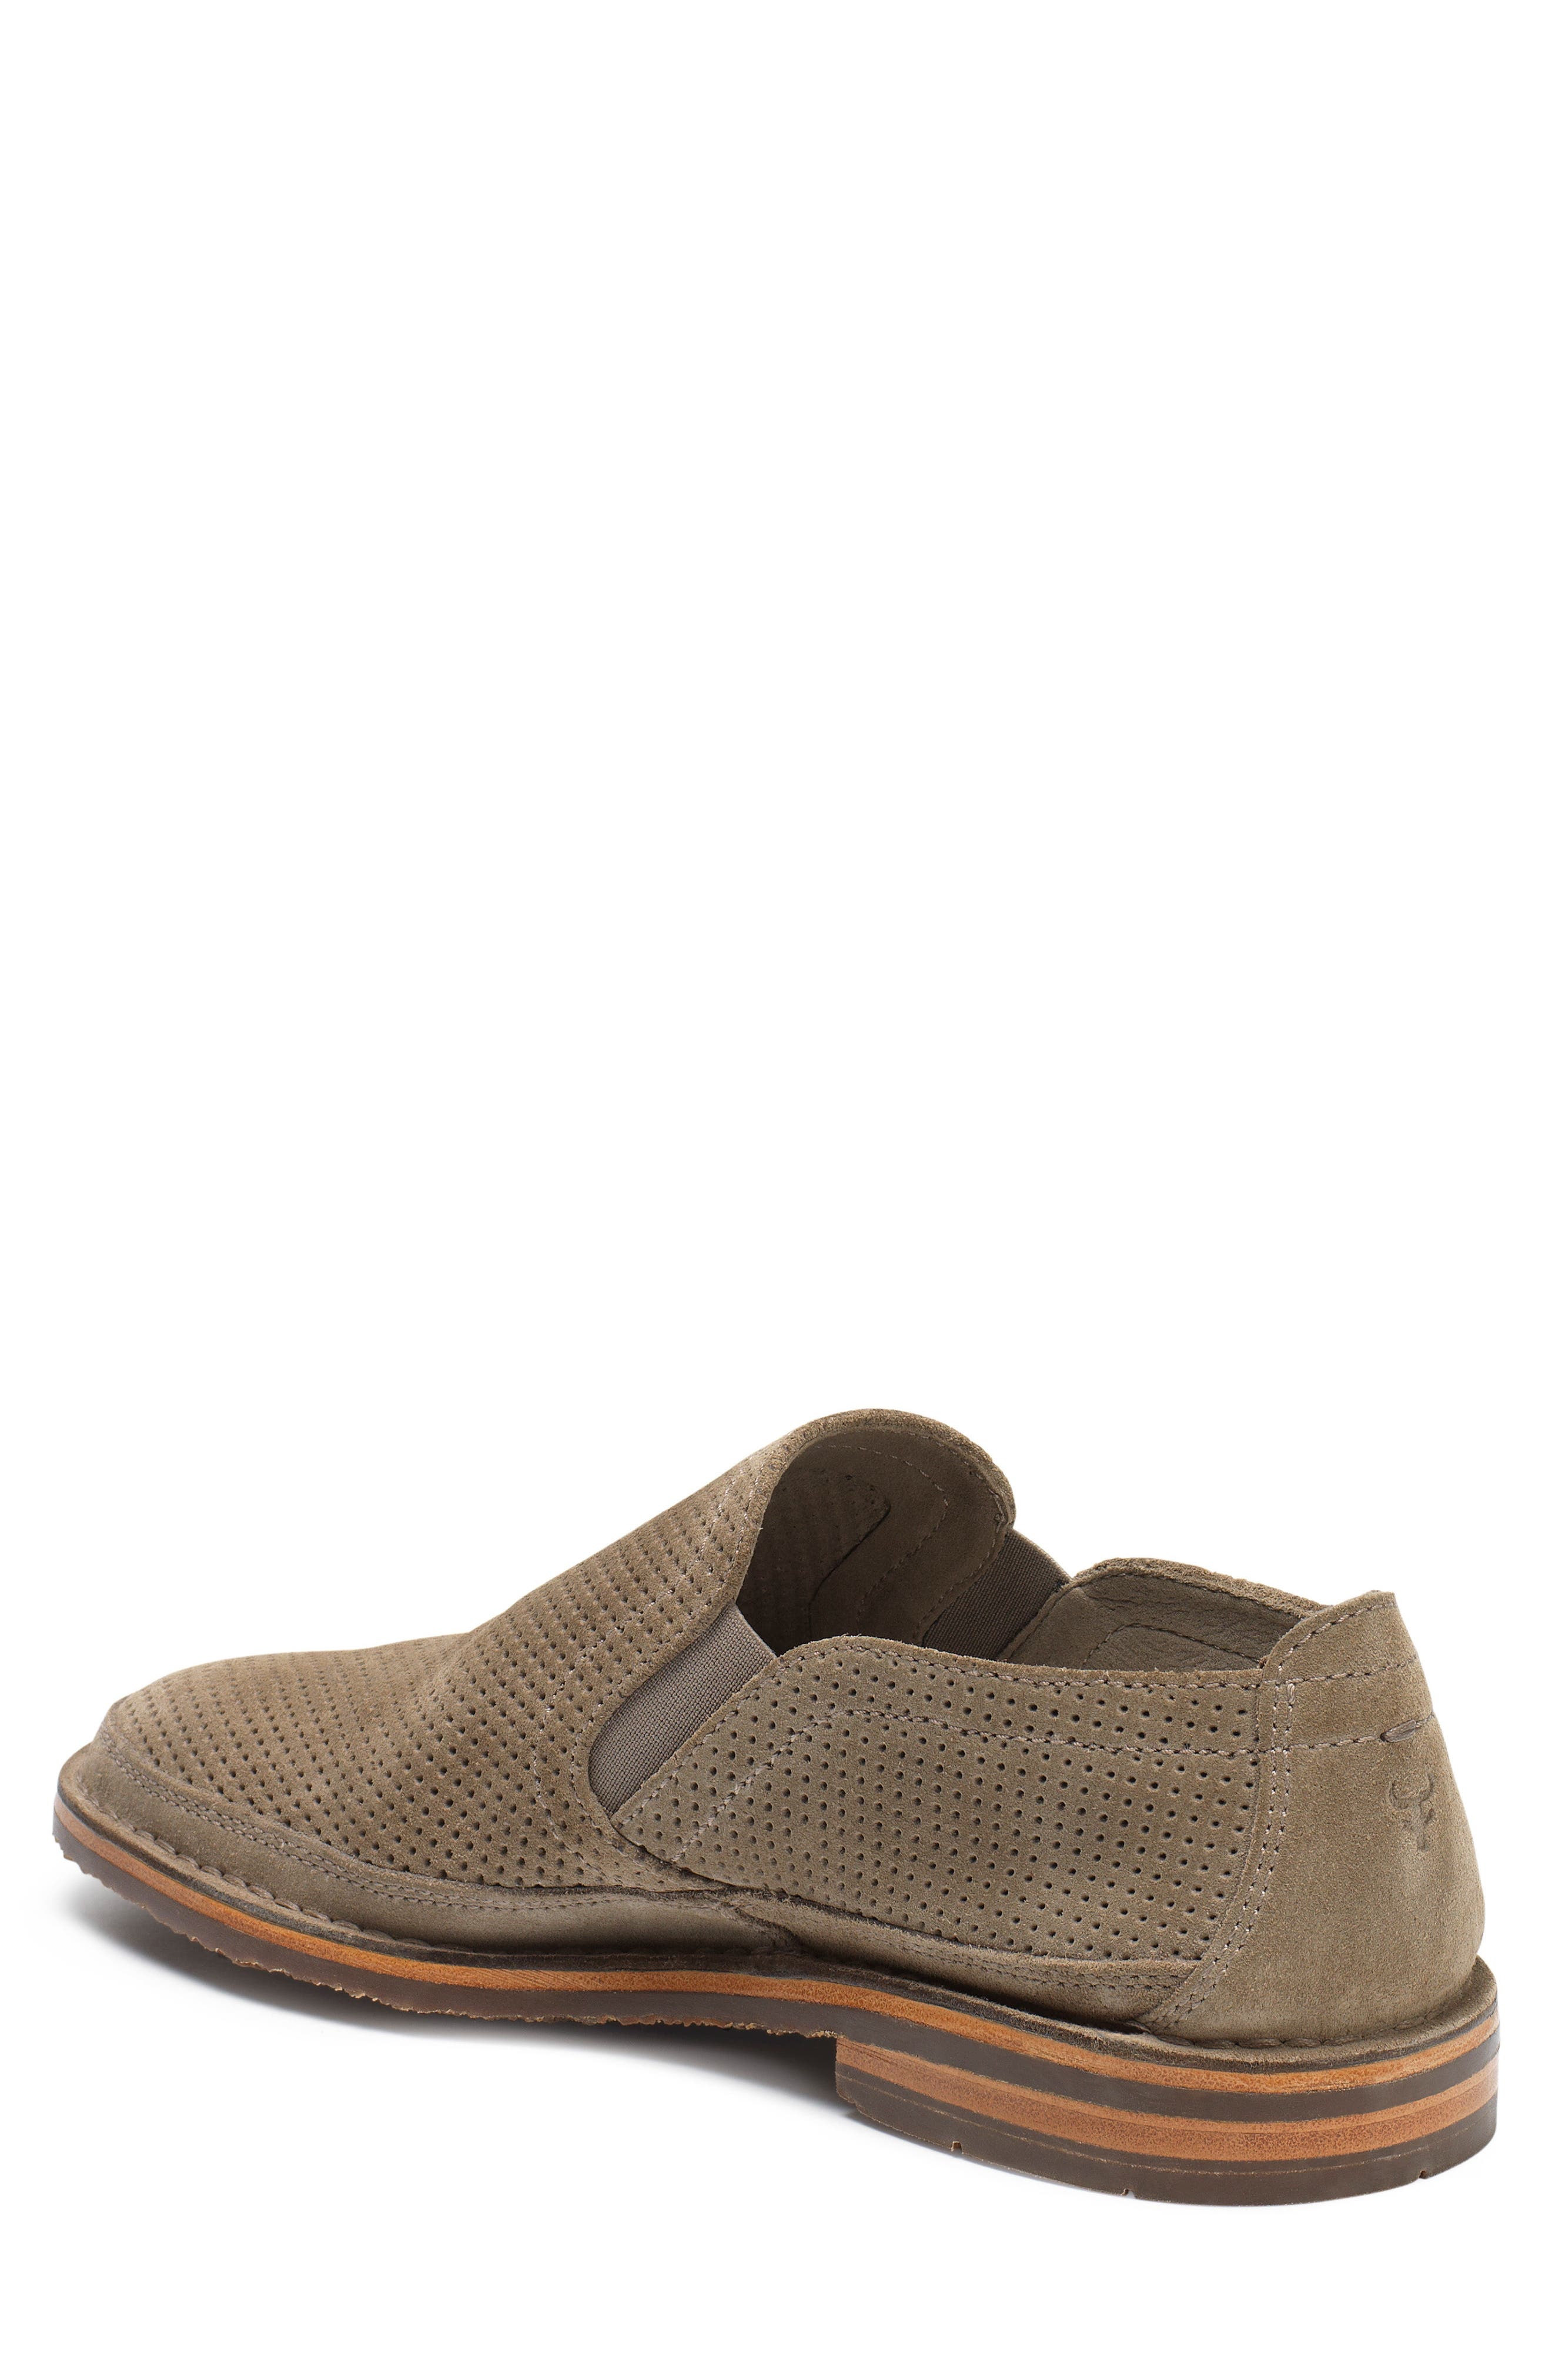 TRASK, Bradley Perforated Slip-On, Alternate thumbnail 2, color, TAUPE SUEDE